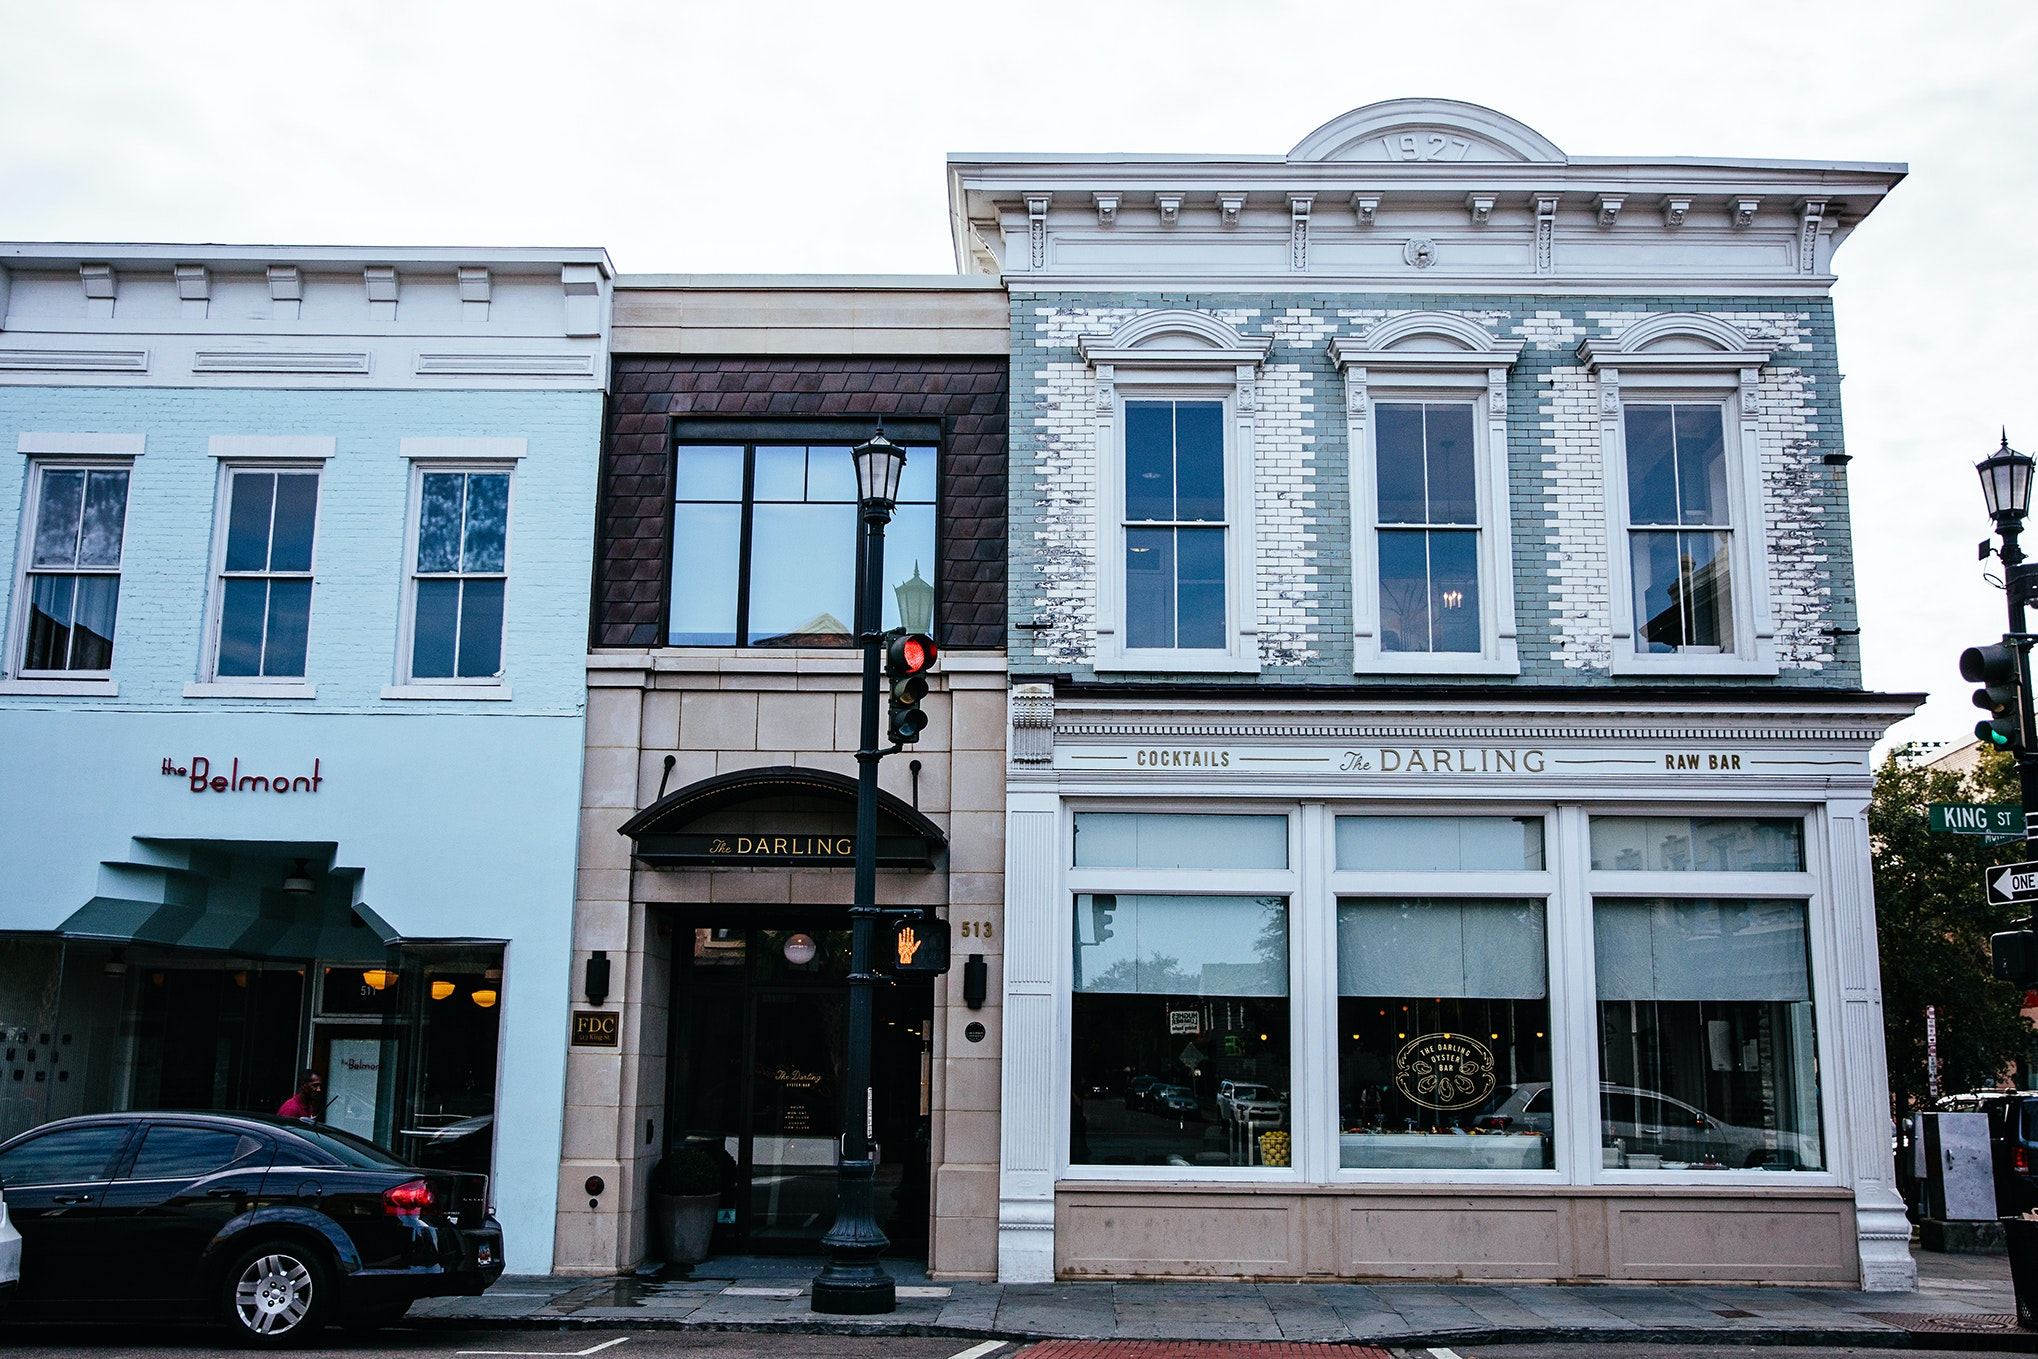 Among the myriad restaurant choices on Upper King, the Darling Oyster Bar is a favorite destination.